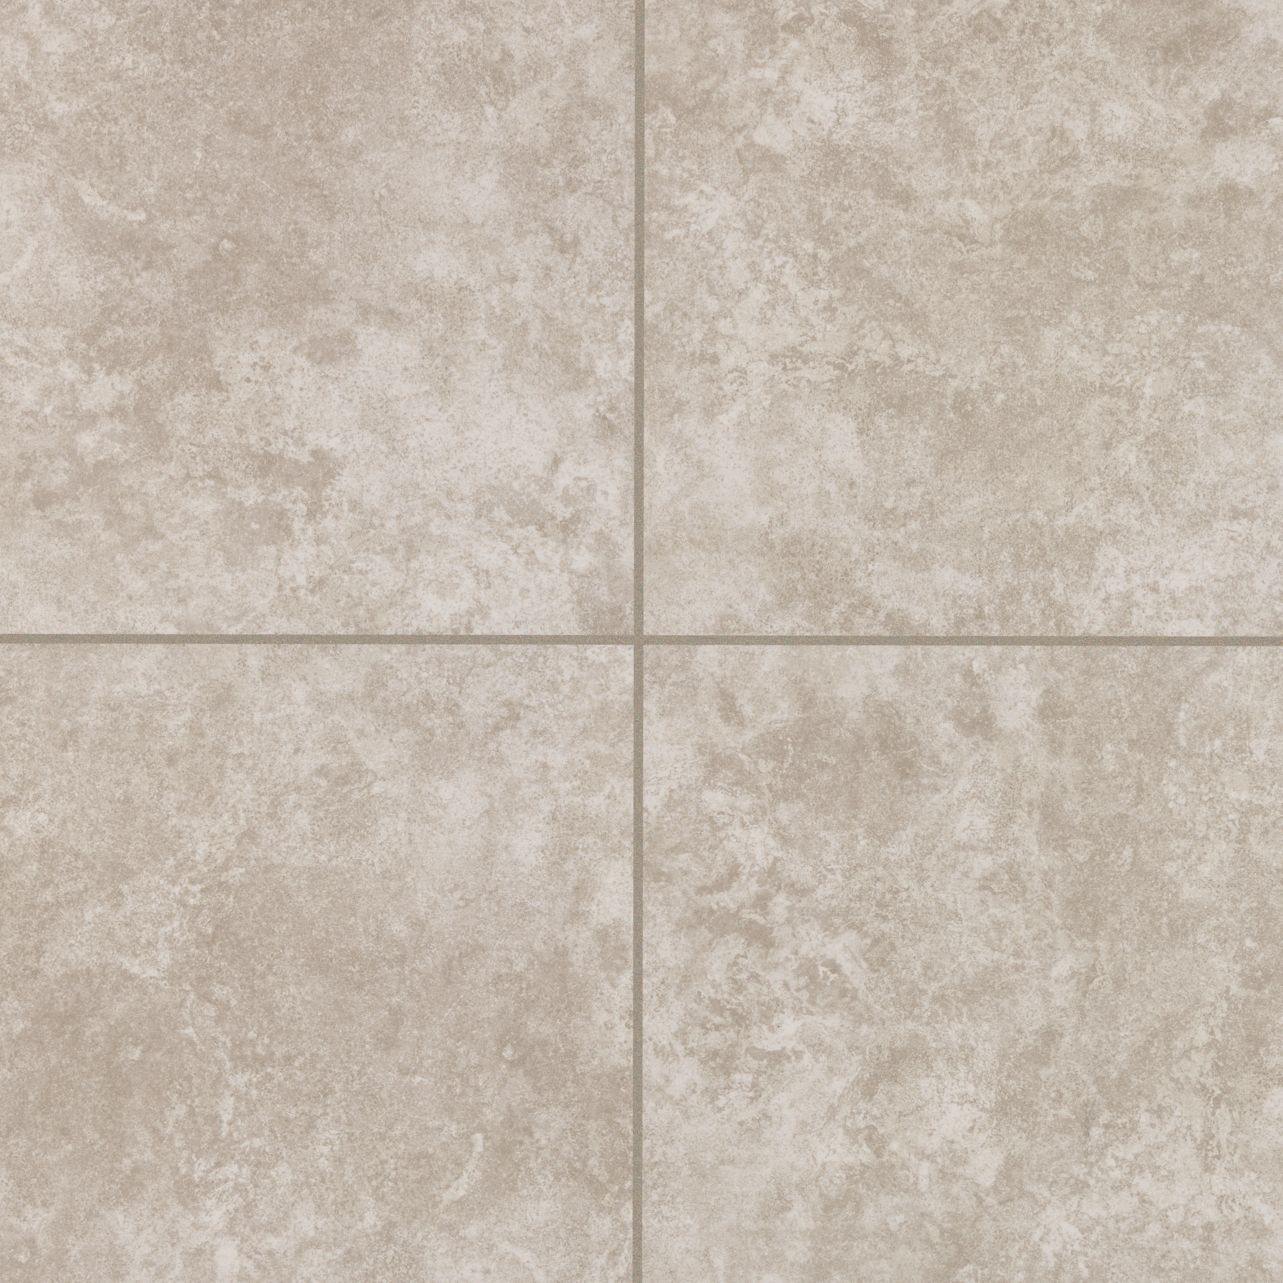 CeramicPorcelainTile Astello Floor Grey  main image